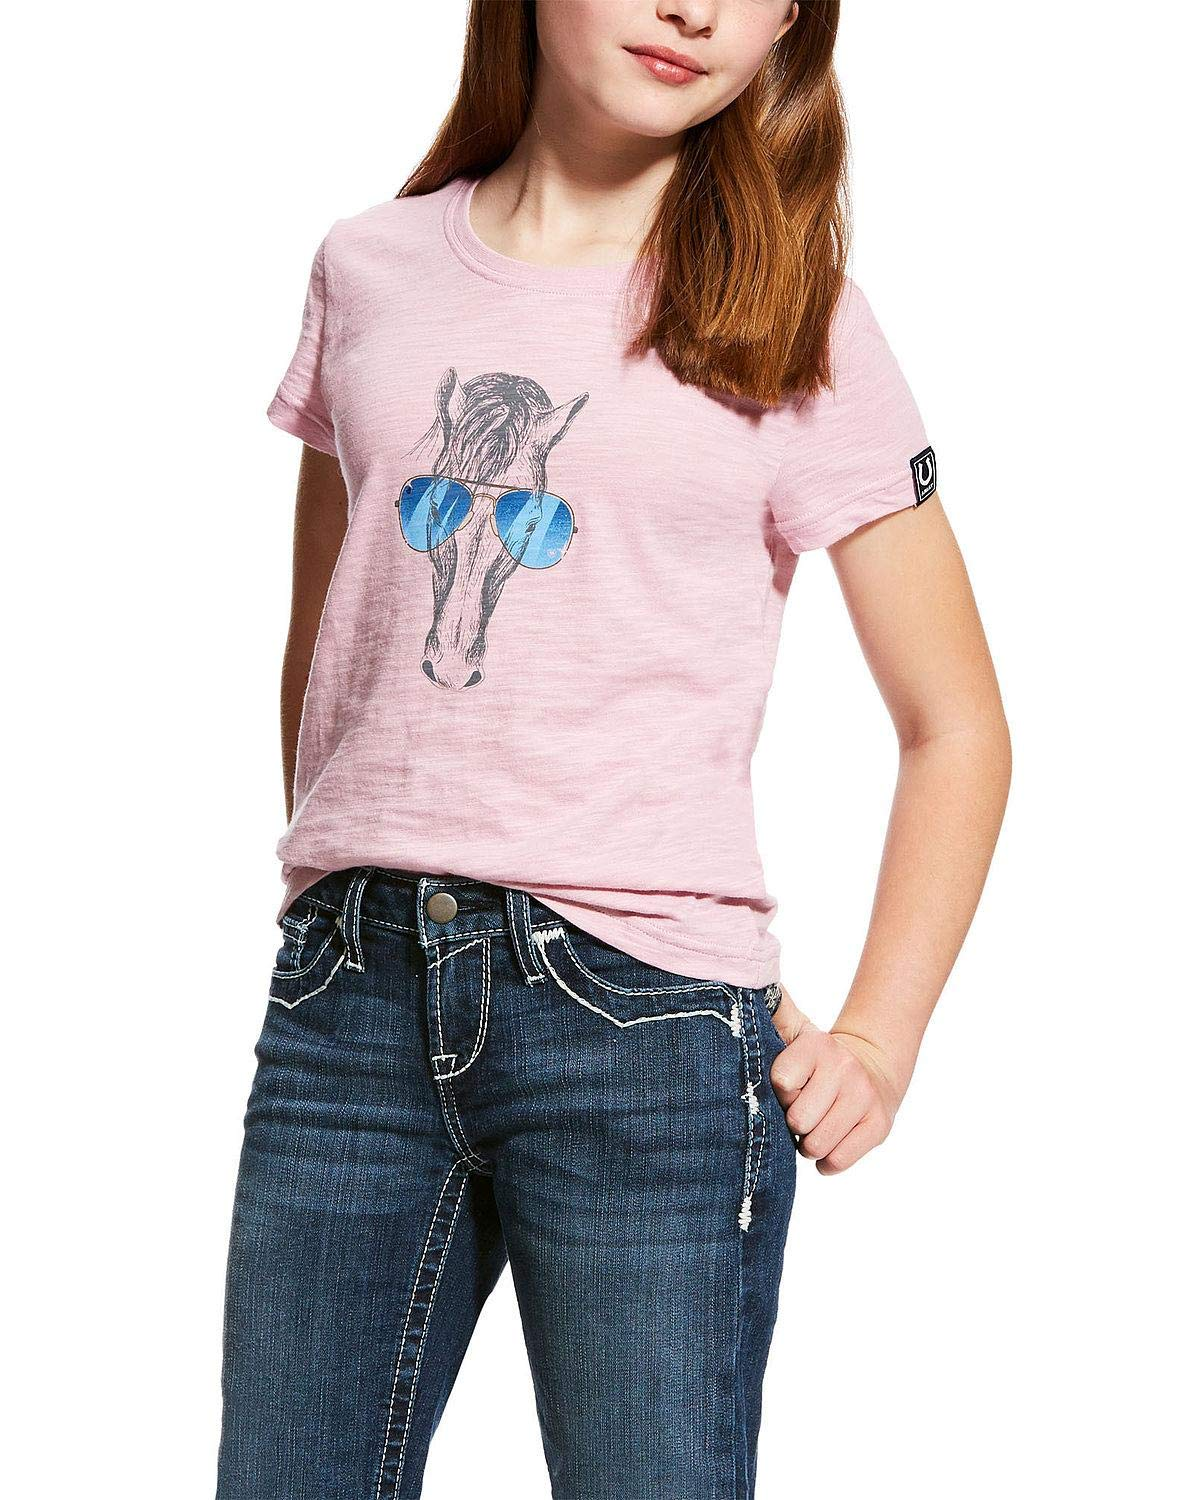 Ariat Girls' Haberdashery Horse Sunglasses Graphic Tee Lavender X-Small by ARIAT (Image #1)